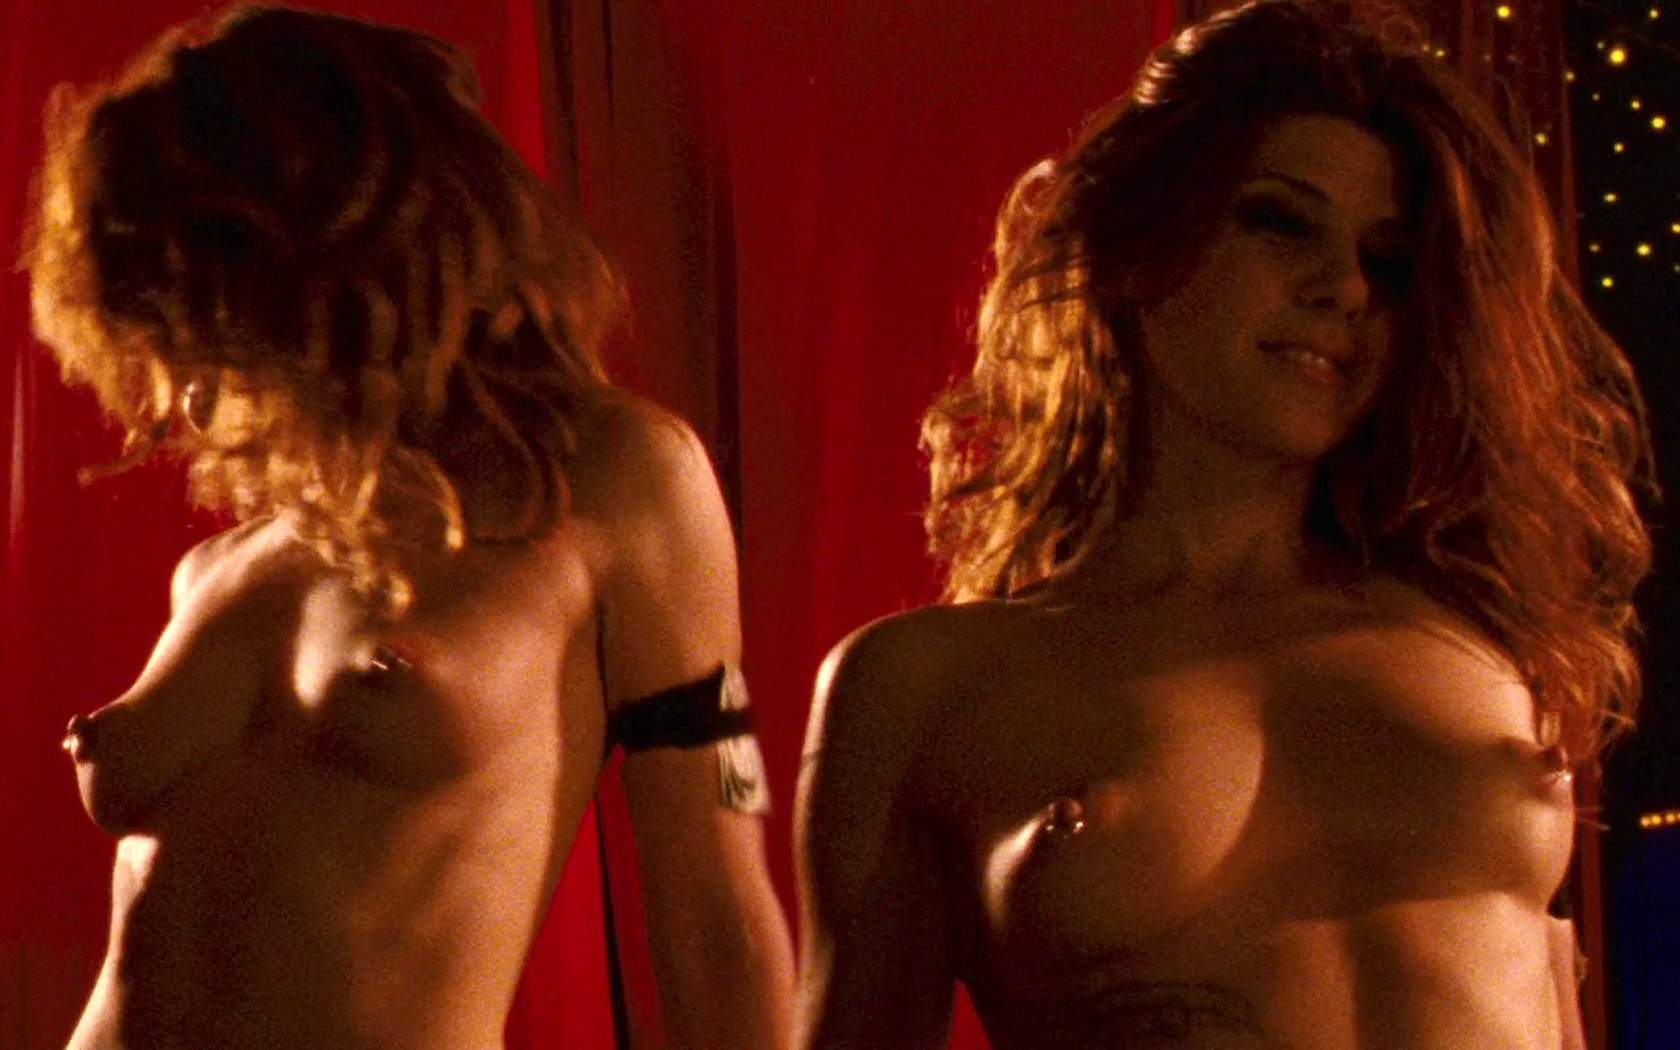 Alisa Tomei Porn marisa tomei nude pictures. rating = 8.97/10